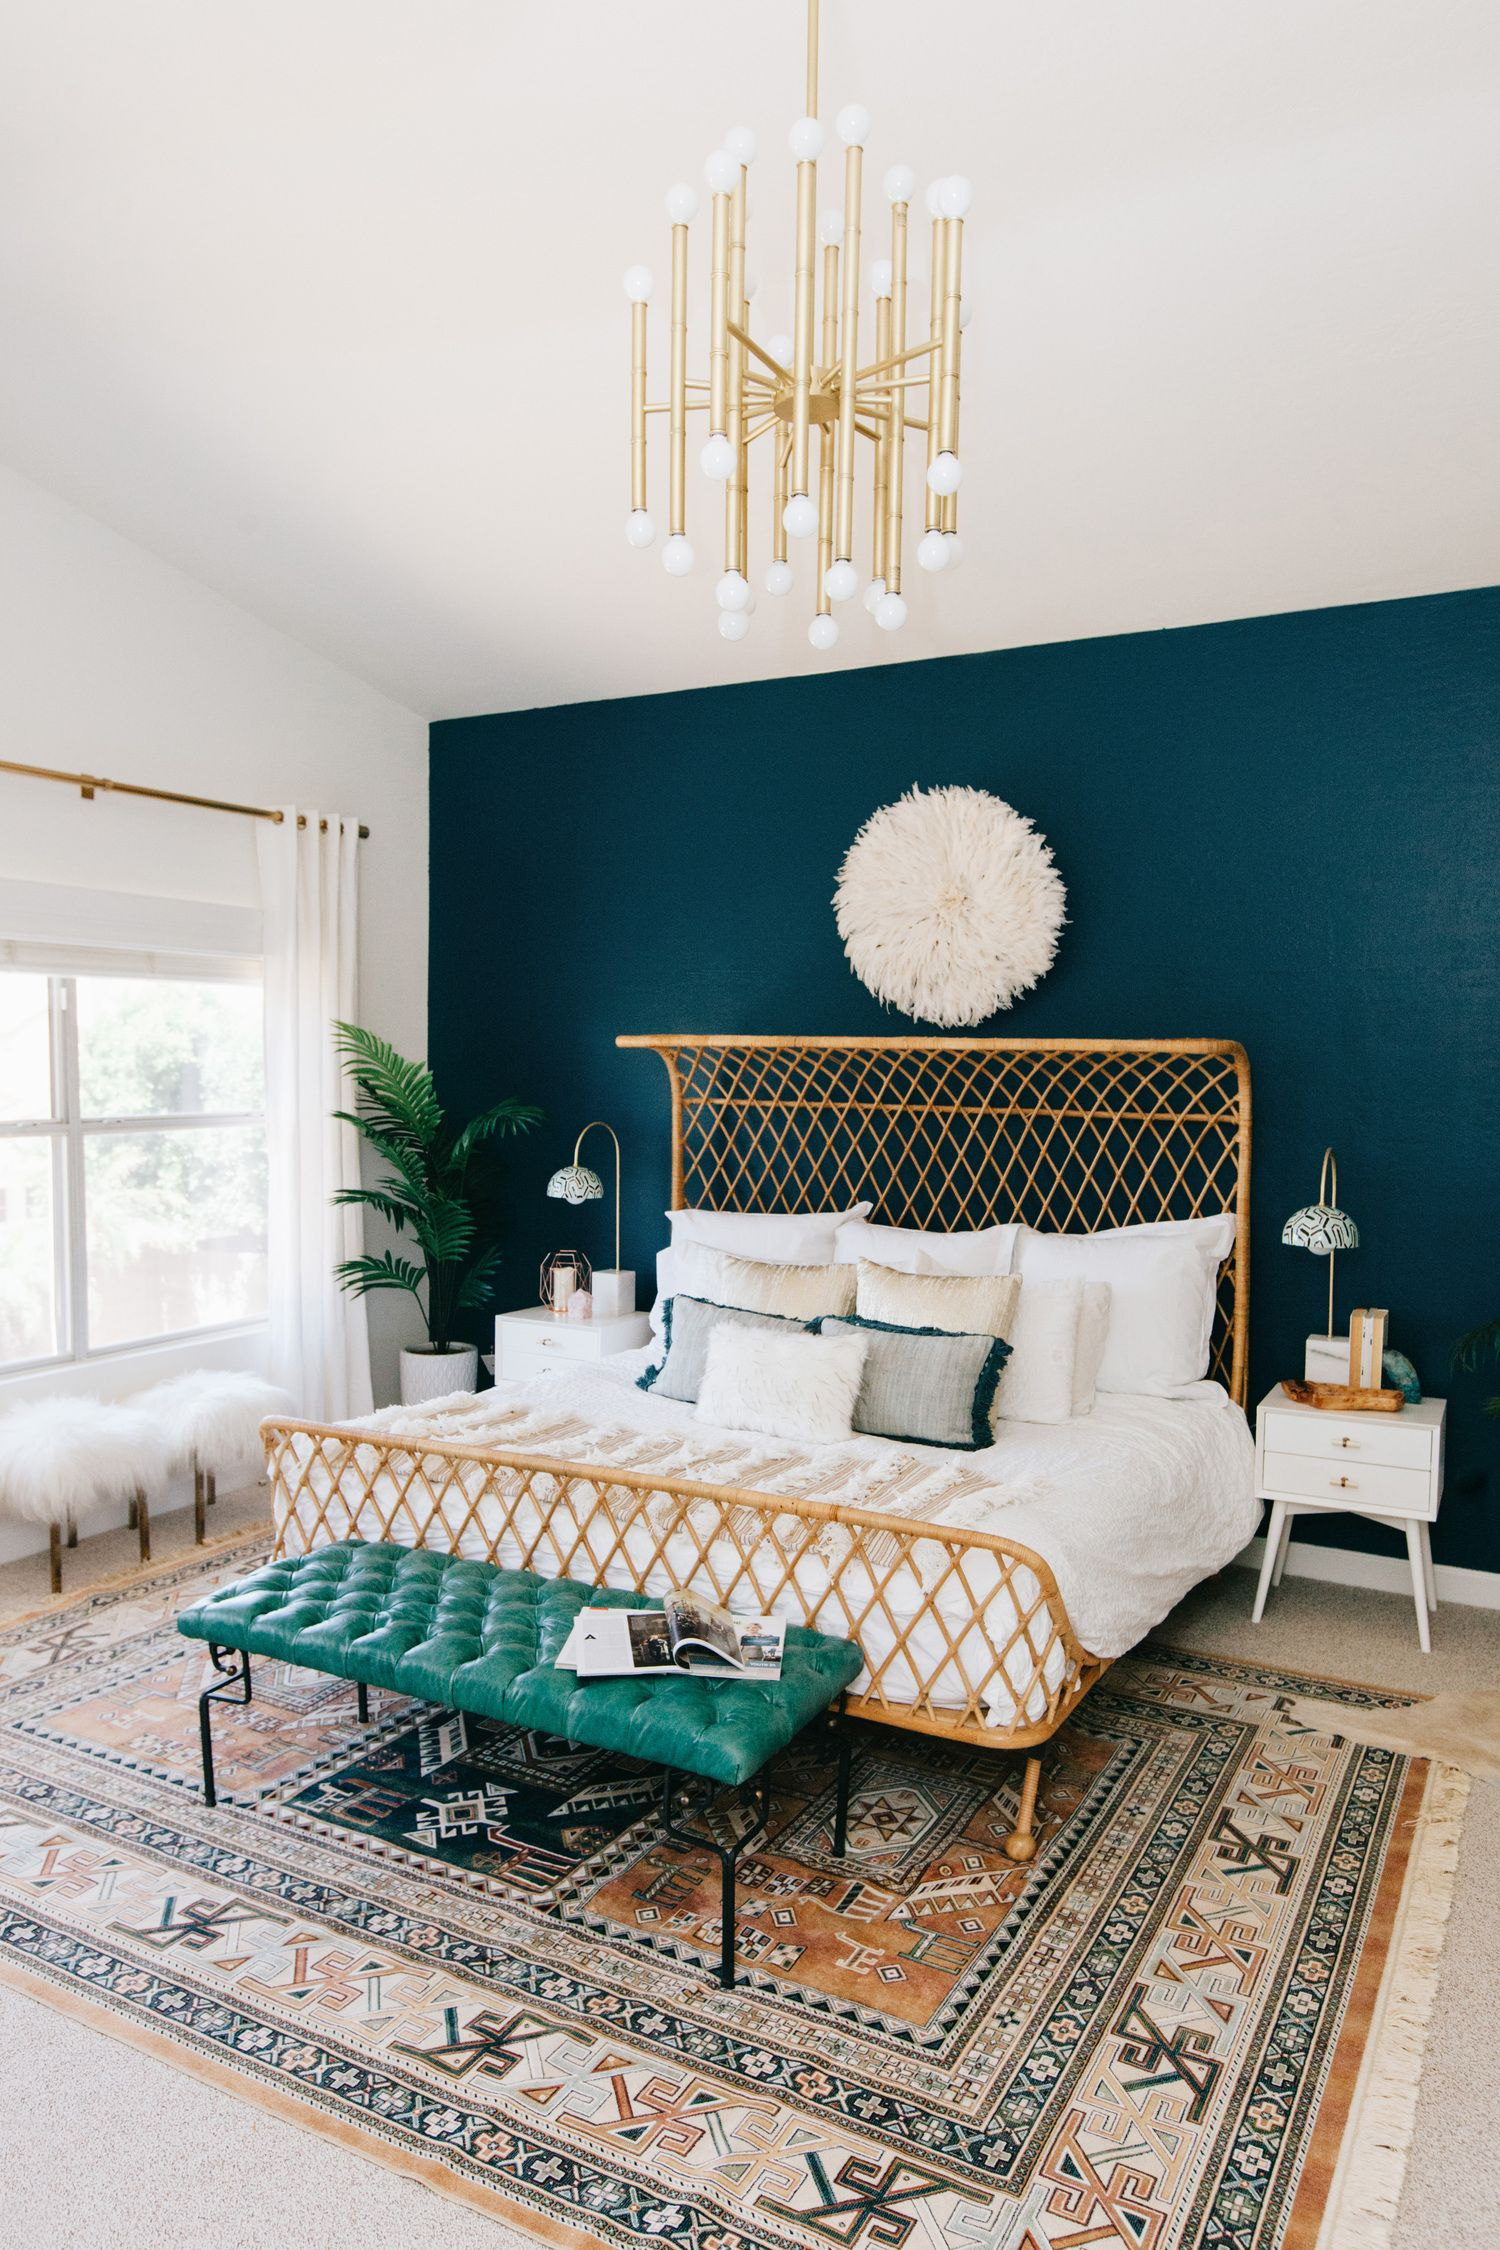 Rattan king size bed against a teal wall with a boho rug and teal tufted leather bench makes for a cozy and eclectic master bedroom